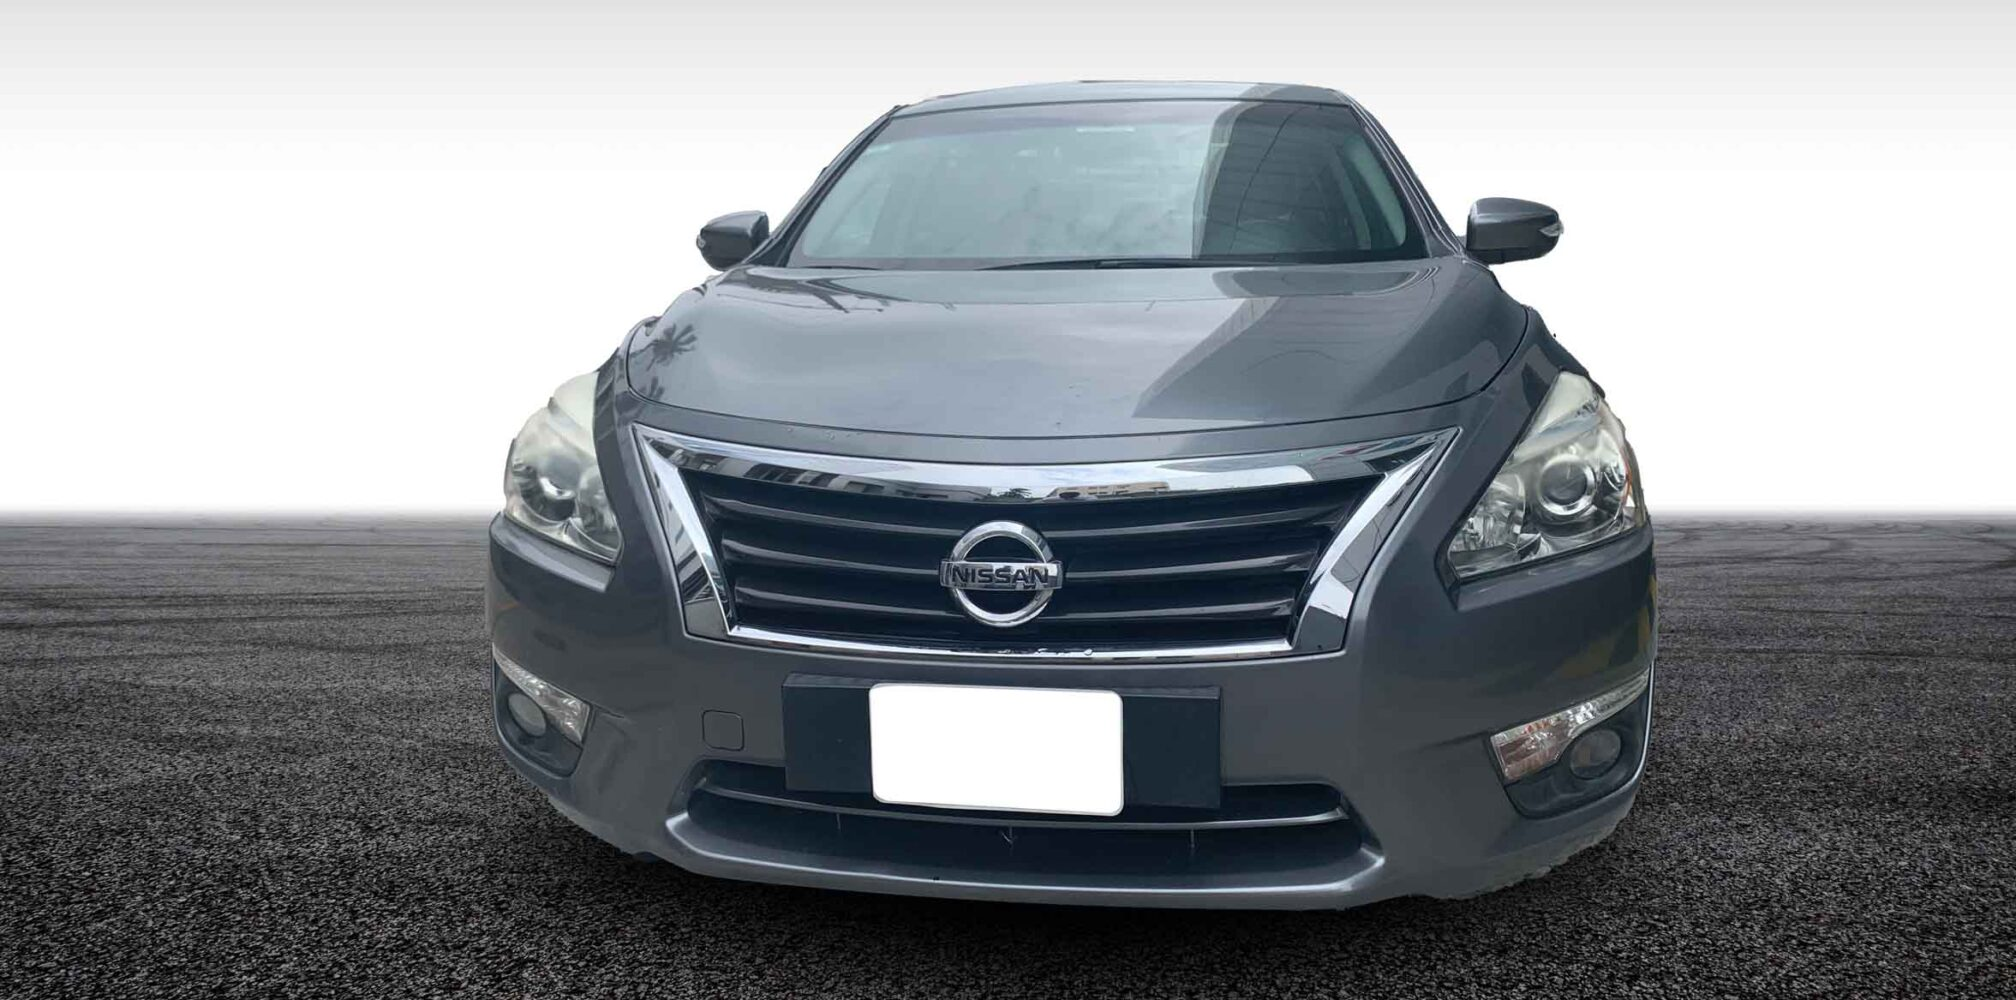 stallion approved - nissan Altima 2015 01 Front VIEW